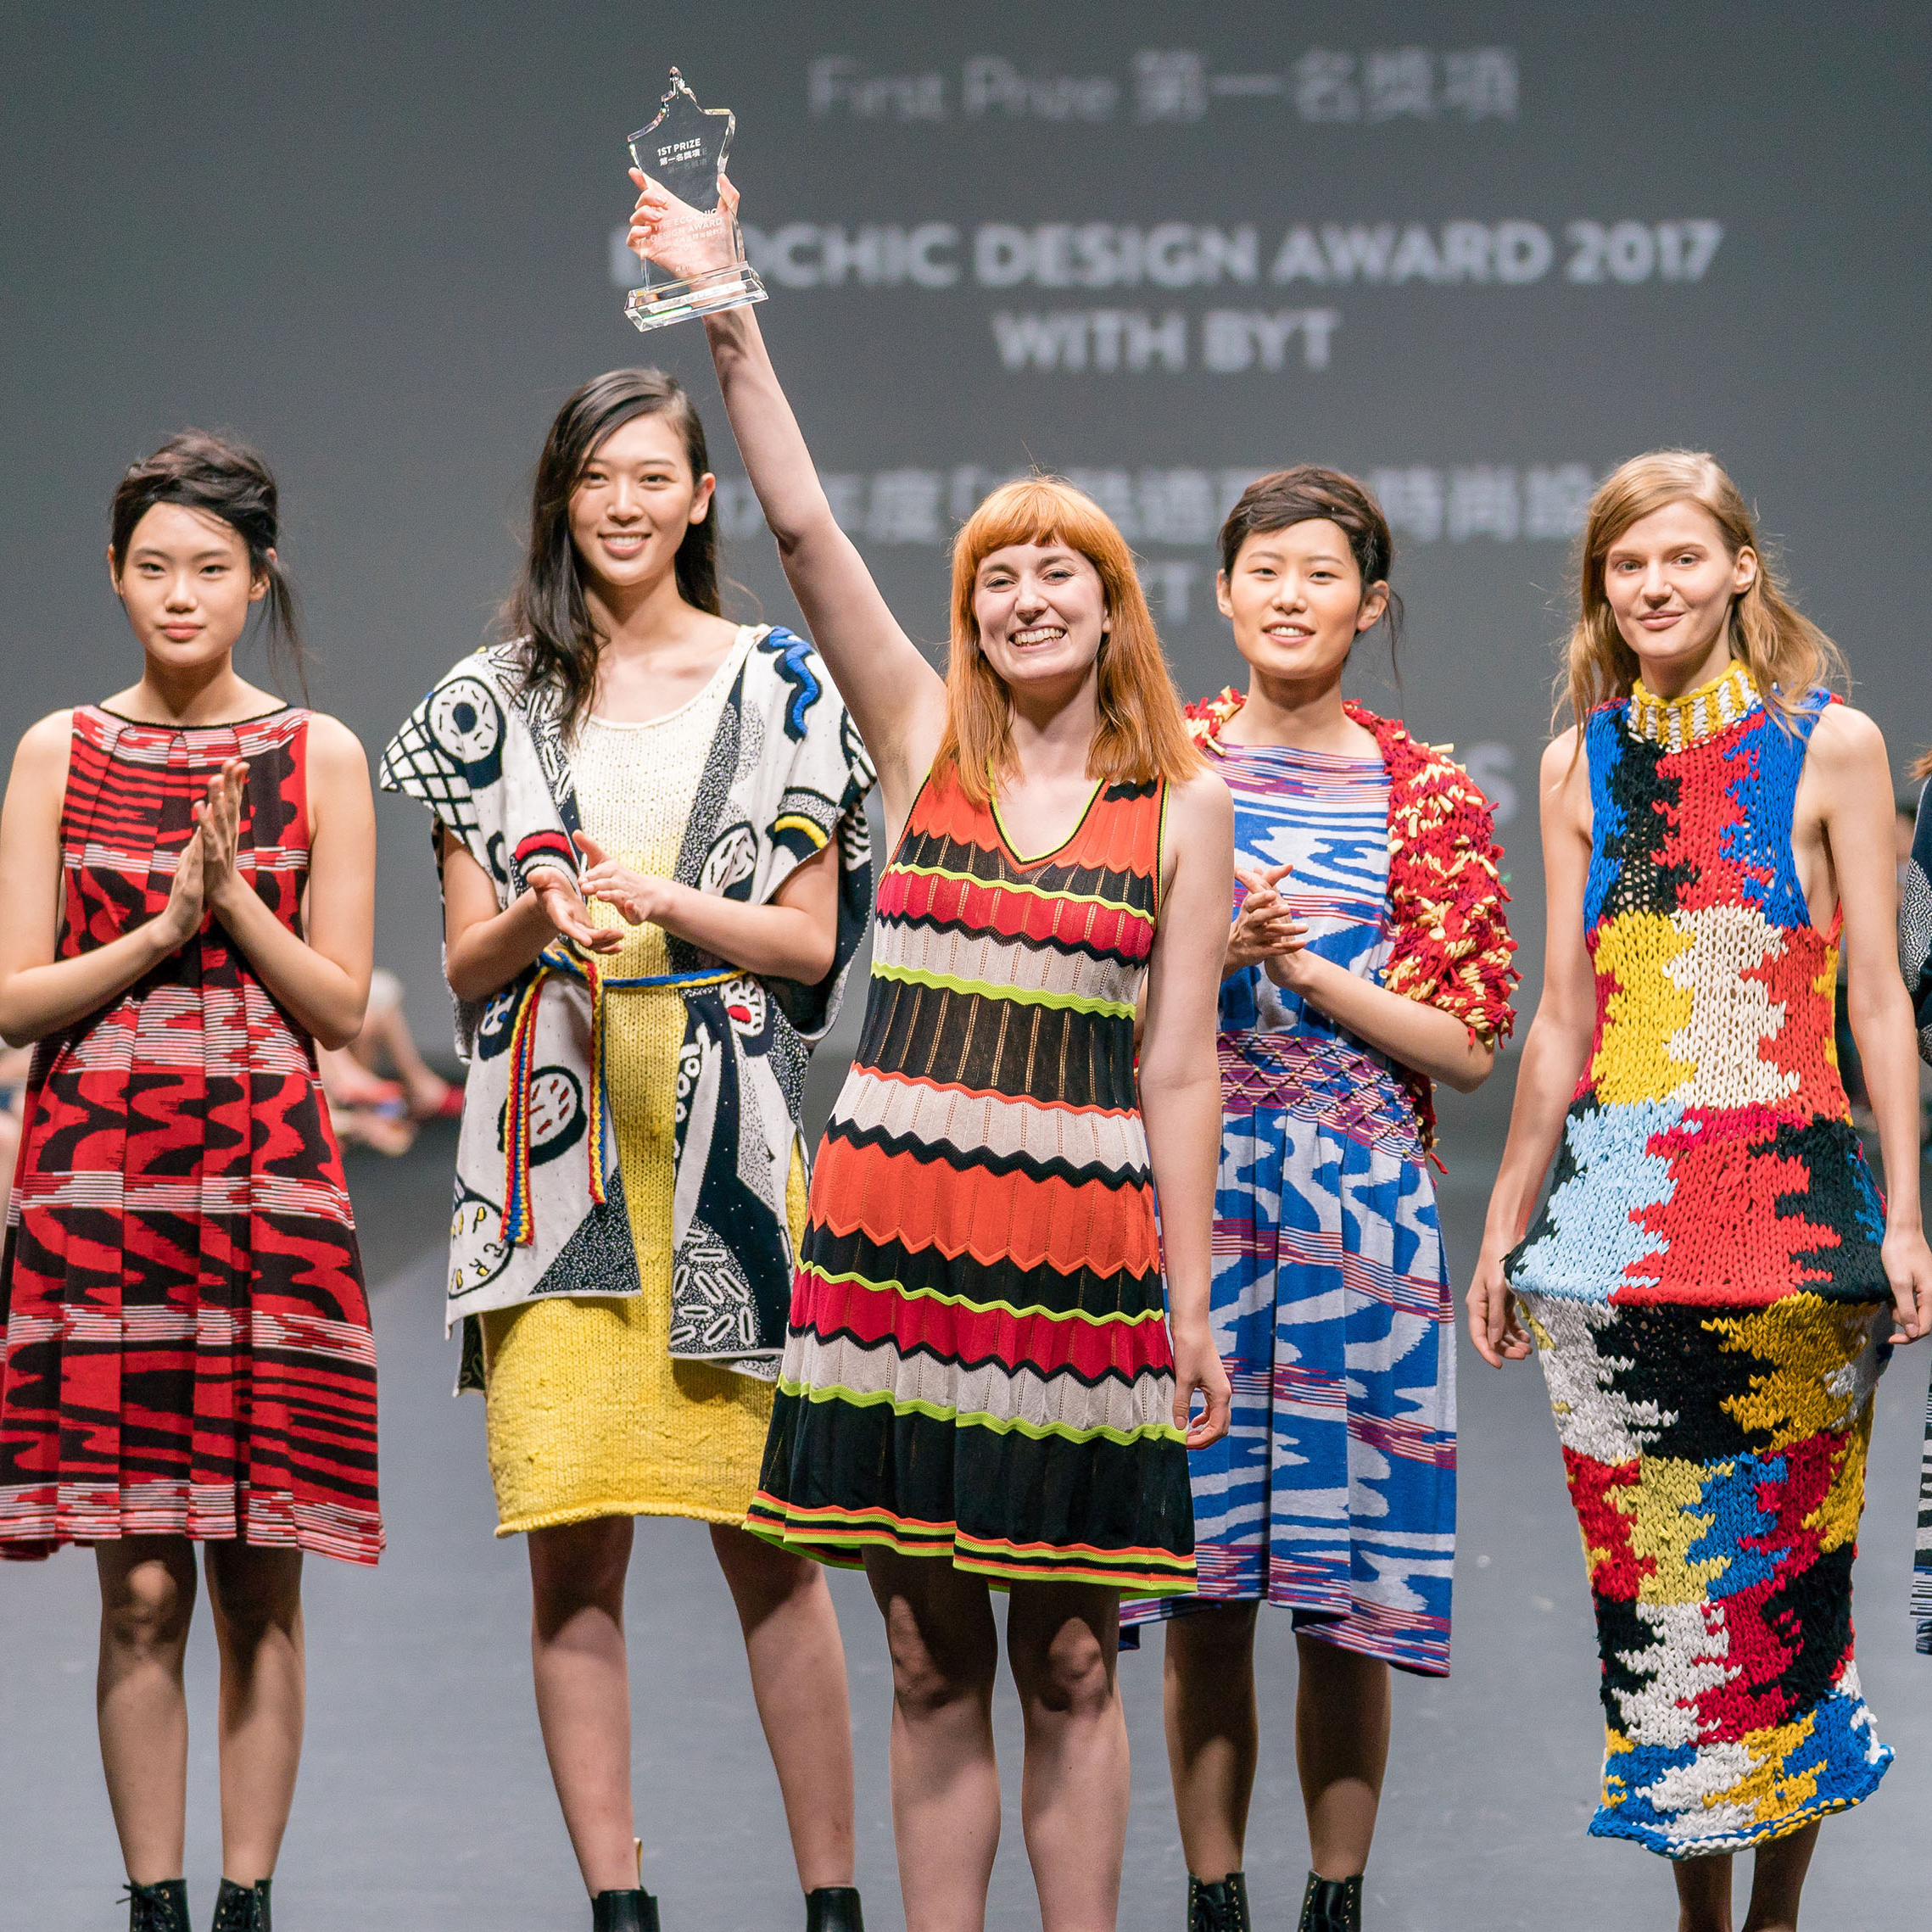 First prize: The EcoChic Design Award 2017 with BYT   Kate Morris, UK